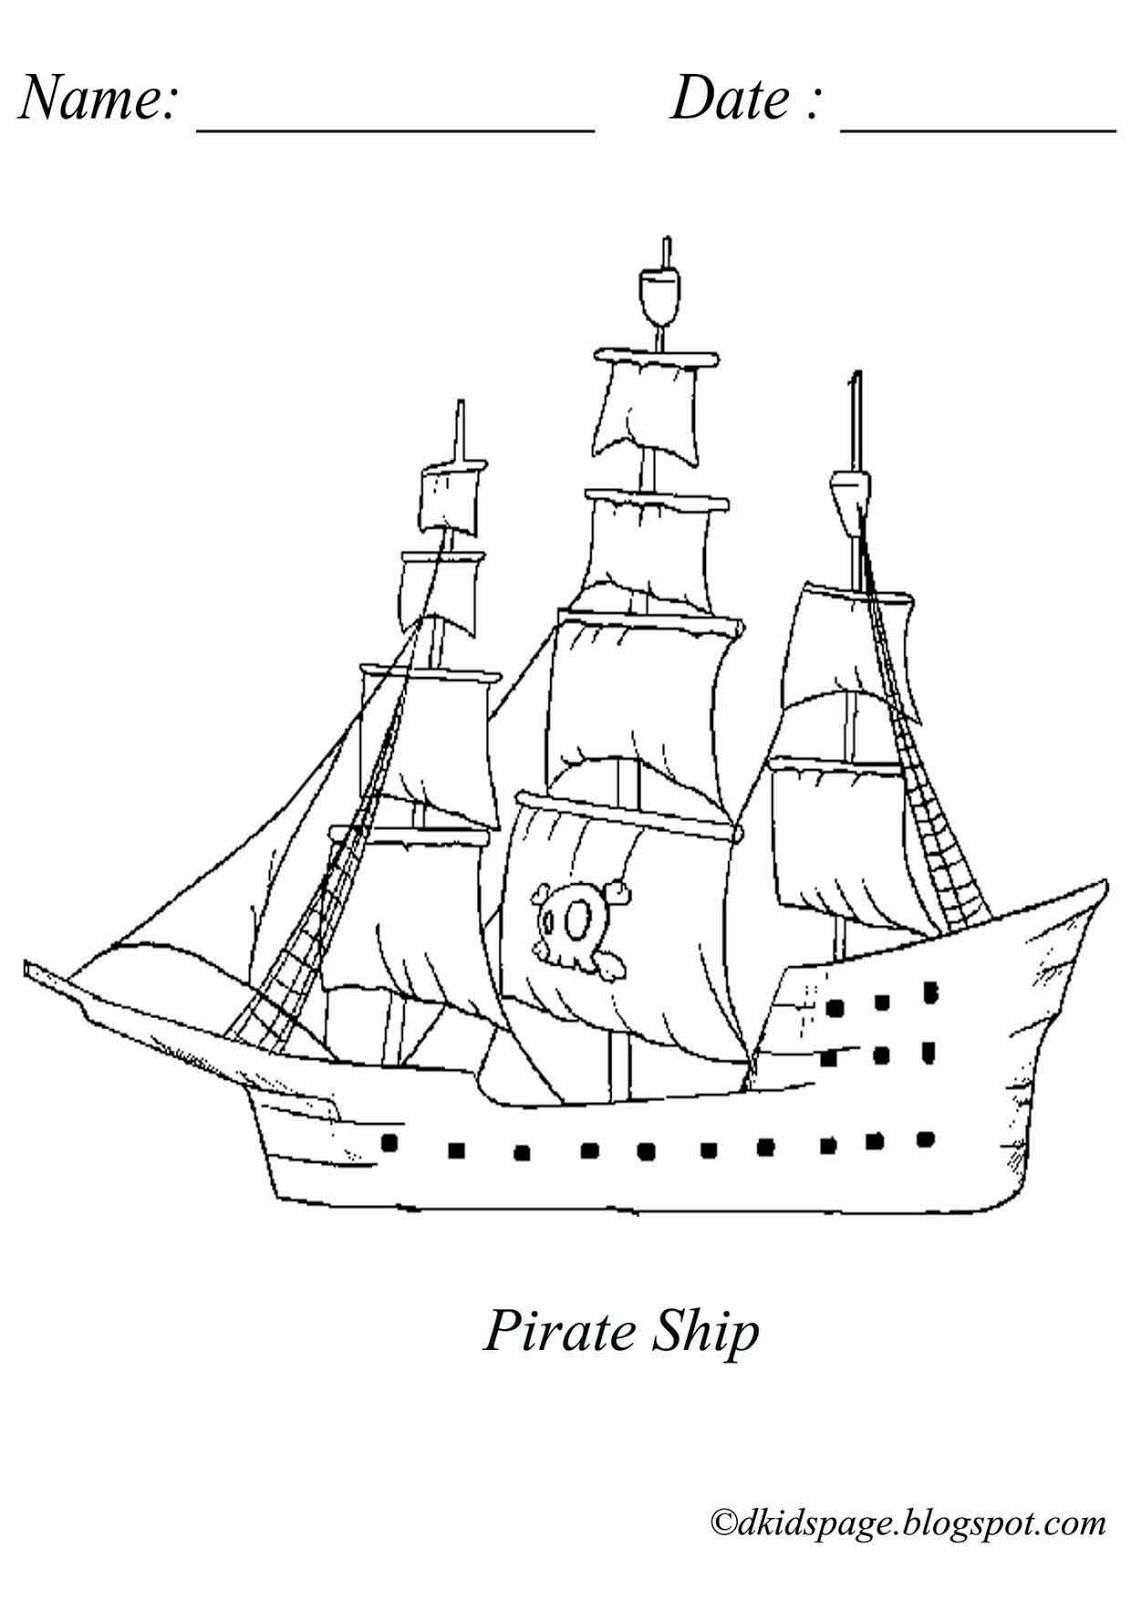 Coloring Picture Of Pirate Ship Download Free Printable